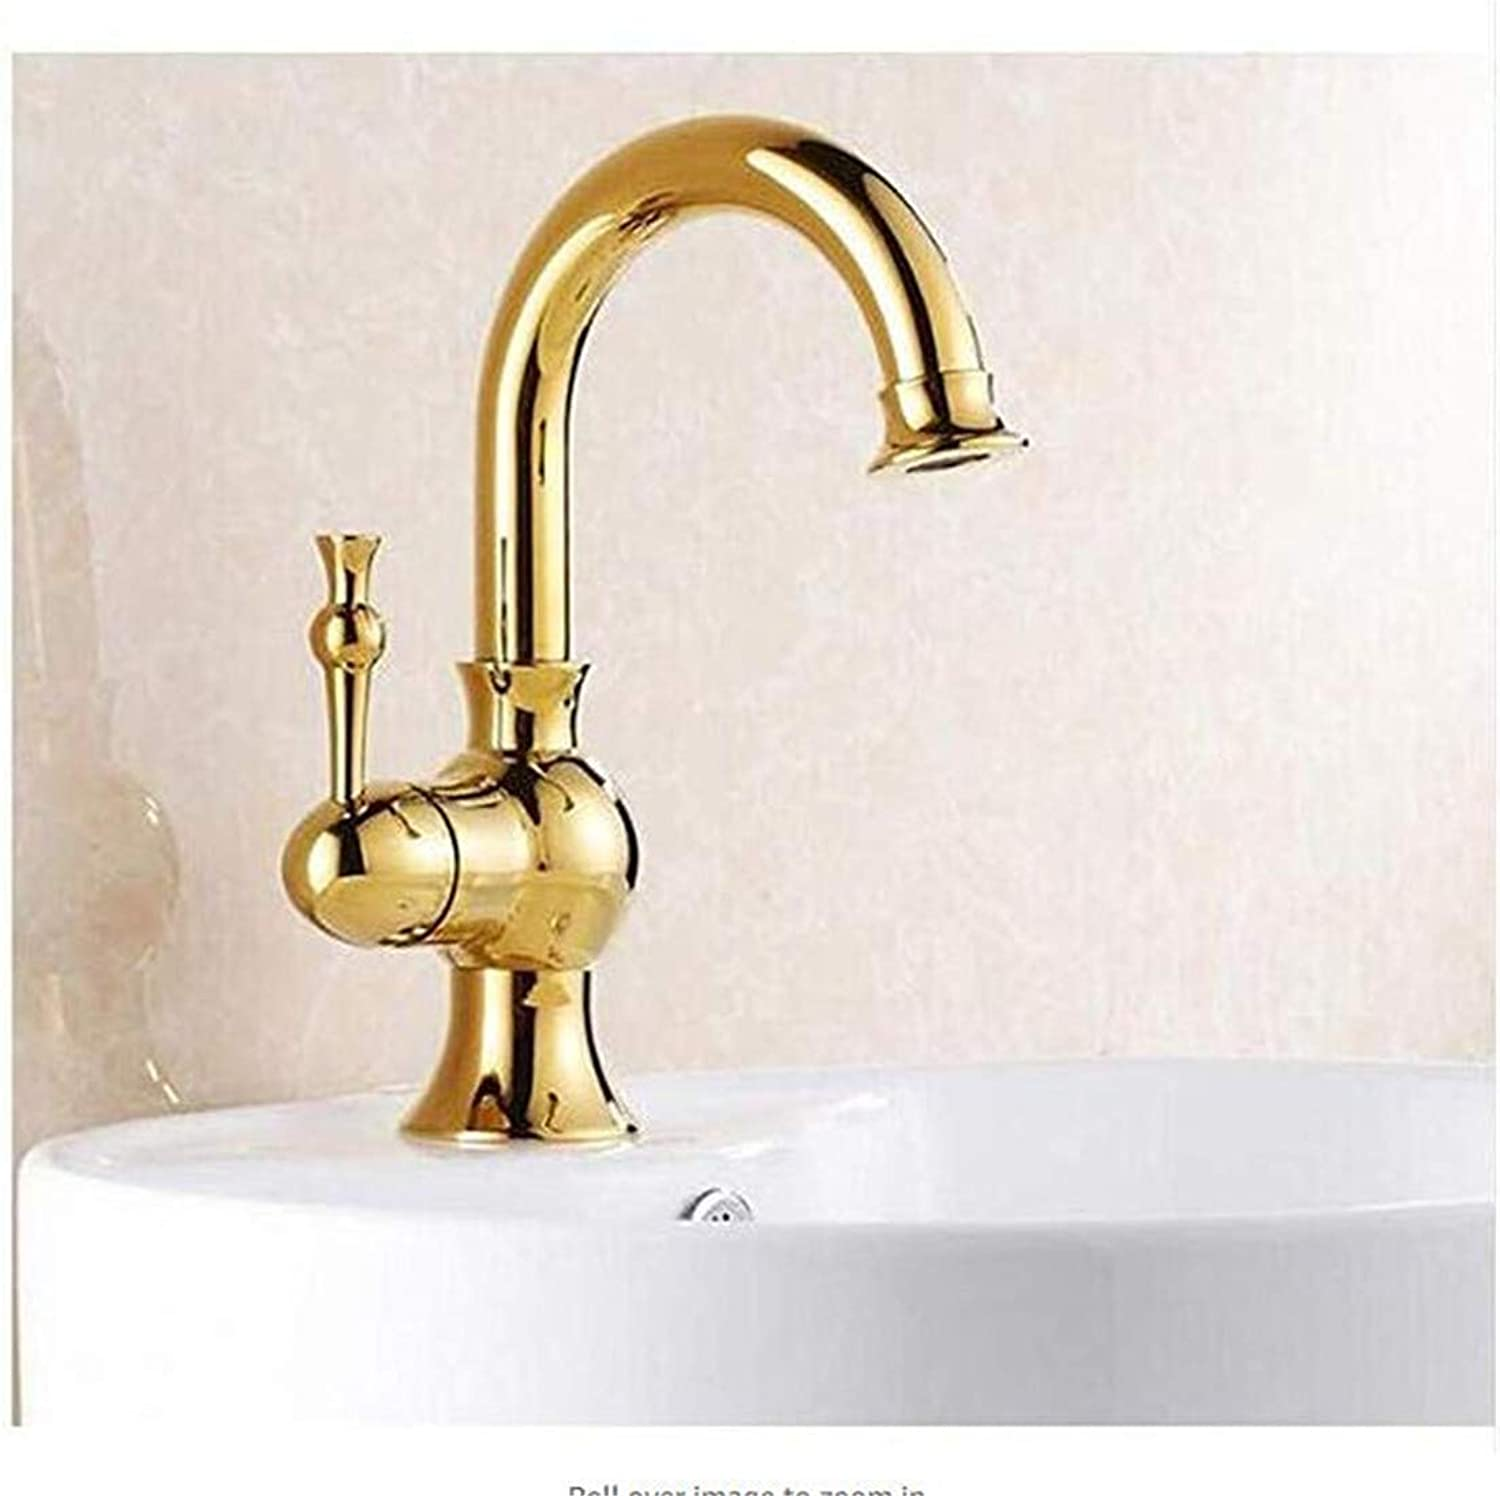 Luxury Modern Hot and Cold Faucet Vintage Platingfaucet Hot and Cold Water Sink Taps Mixer Washbasin Single Handle Faucets Tap